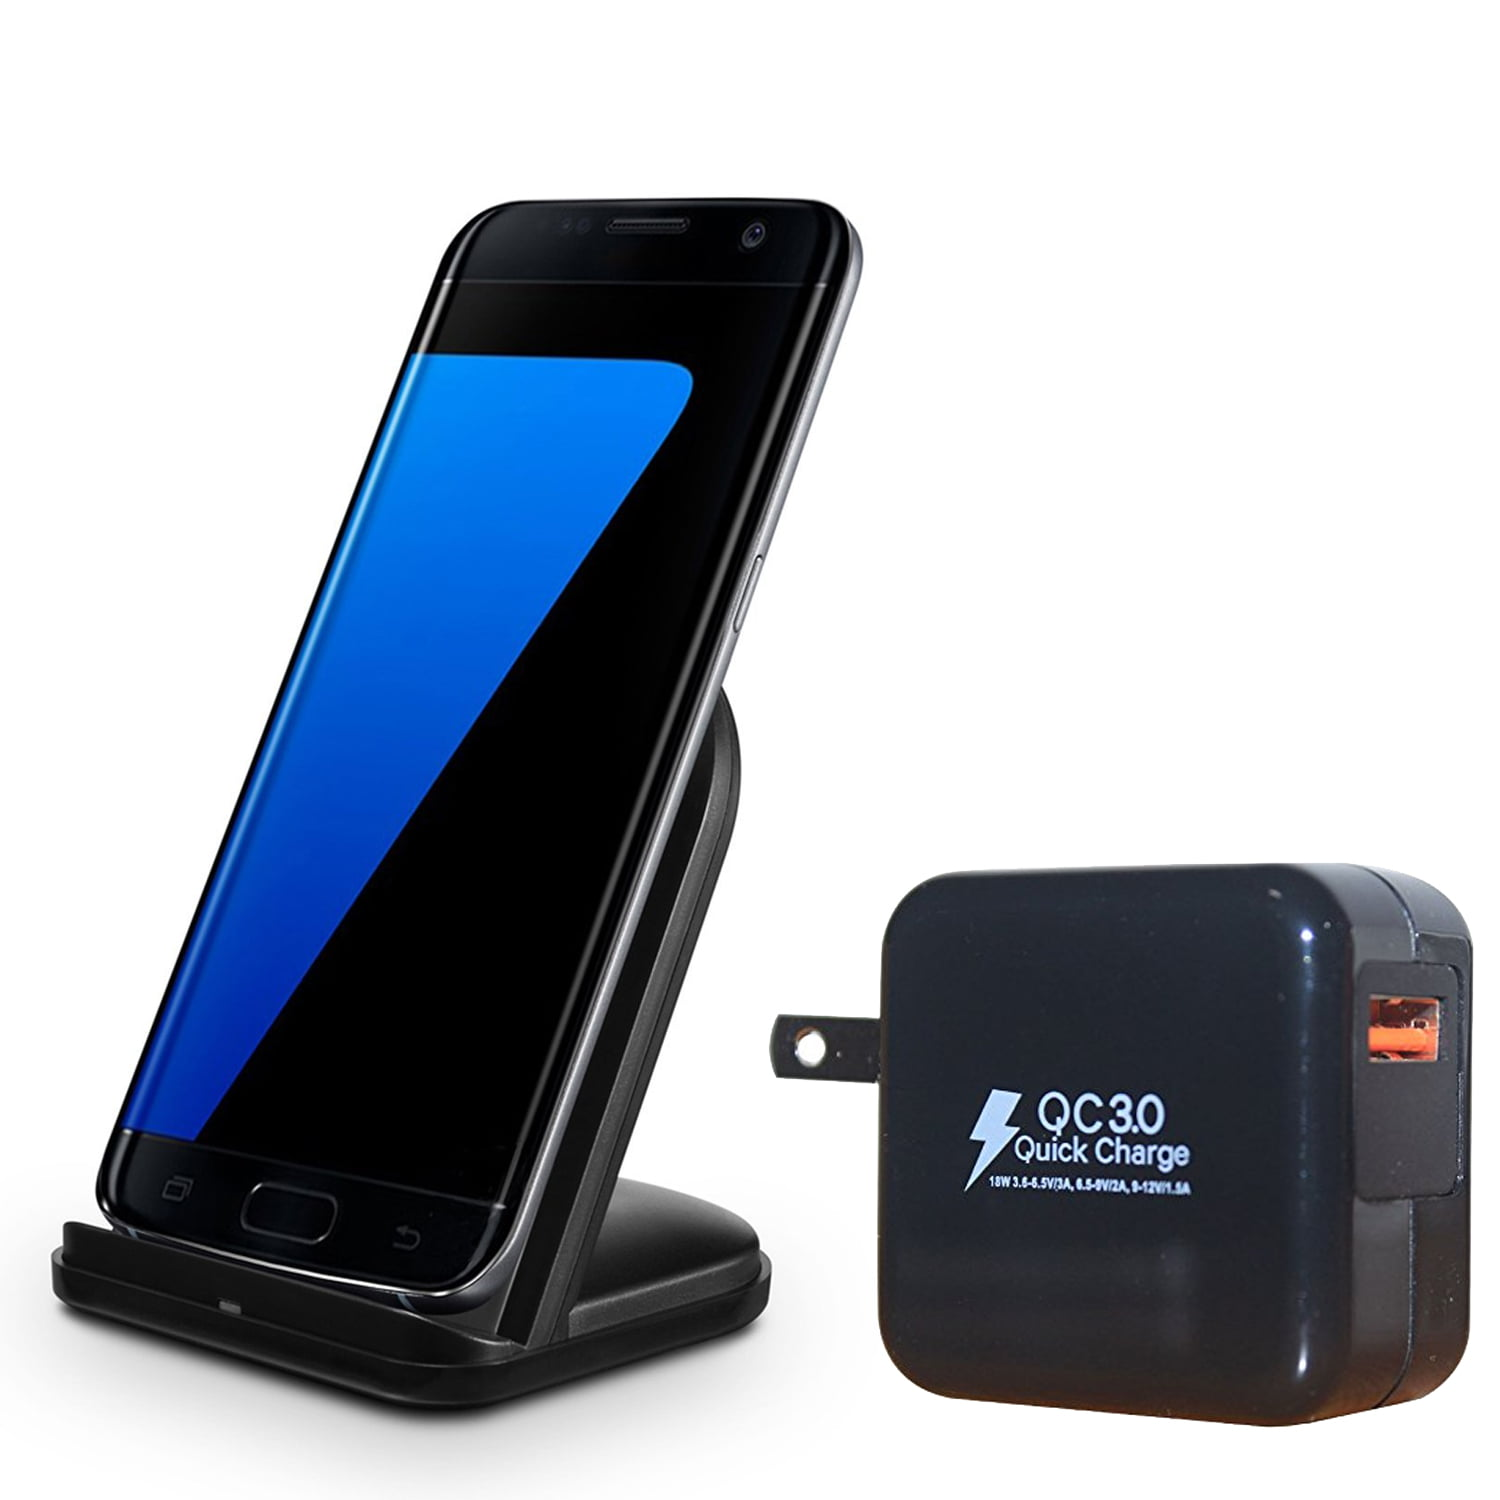 RNDs Fast Charge Wireless Charging Stand for Samsung Galaxy (S8, S8, Plus,  S7, S6), Note (5, 8), Microsoft Lumia and other QI Enabled Devices (QC3 0